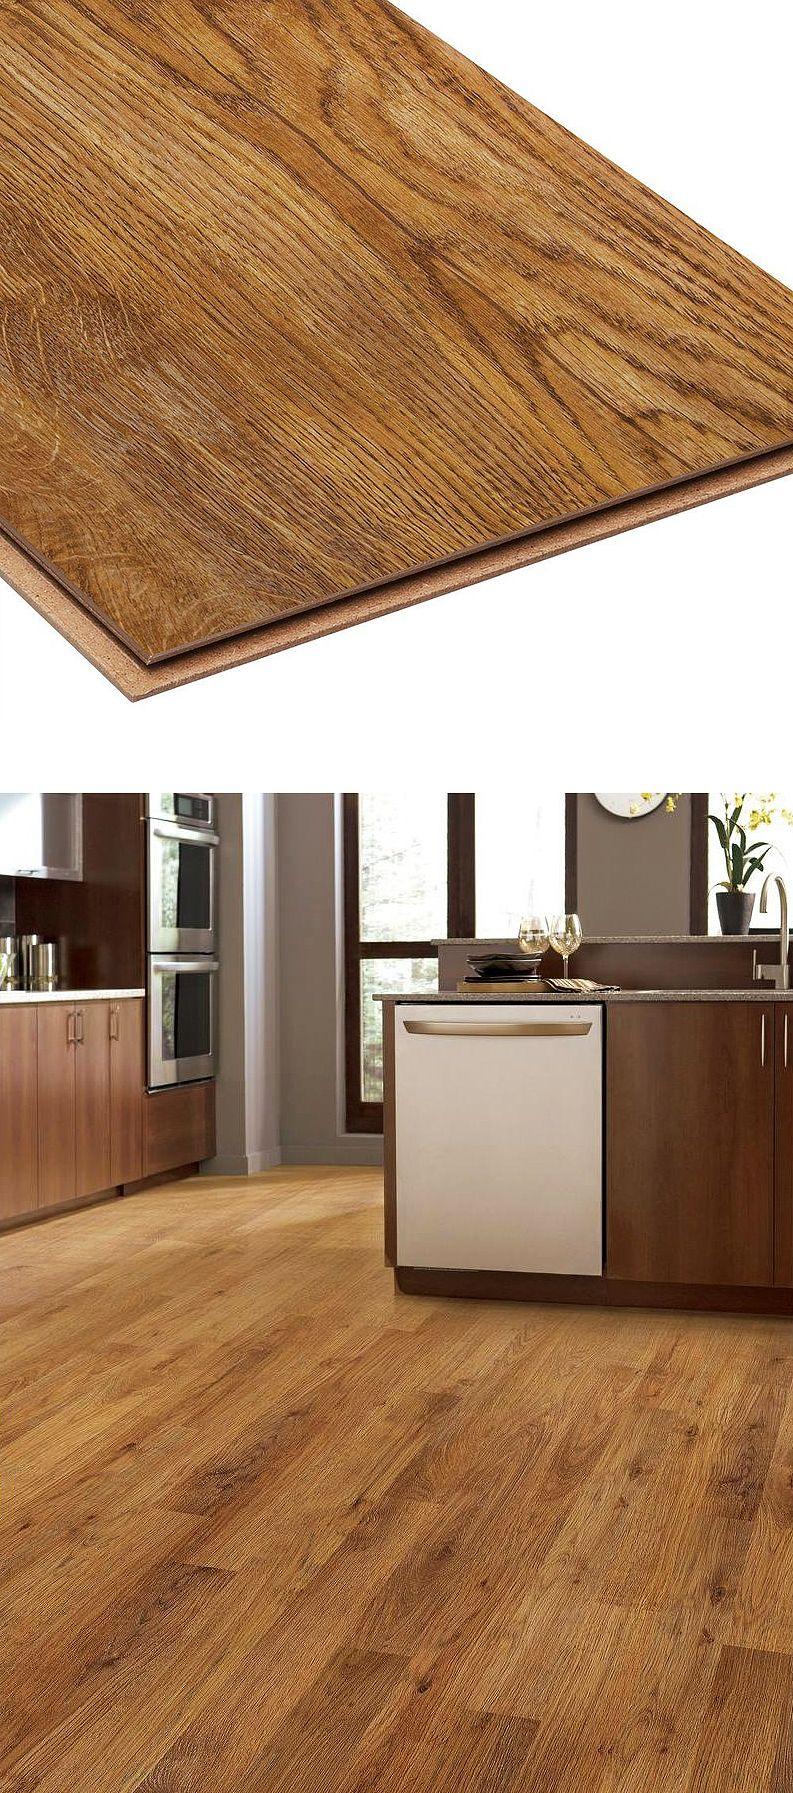 Laminate flooring is a great way to give your kitchen the - Laminate kitchen flooring ideas ...